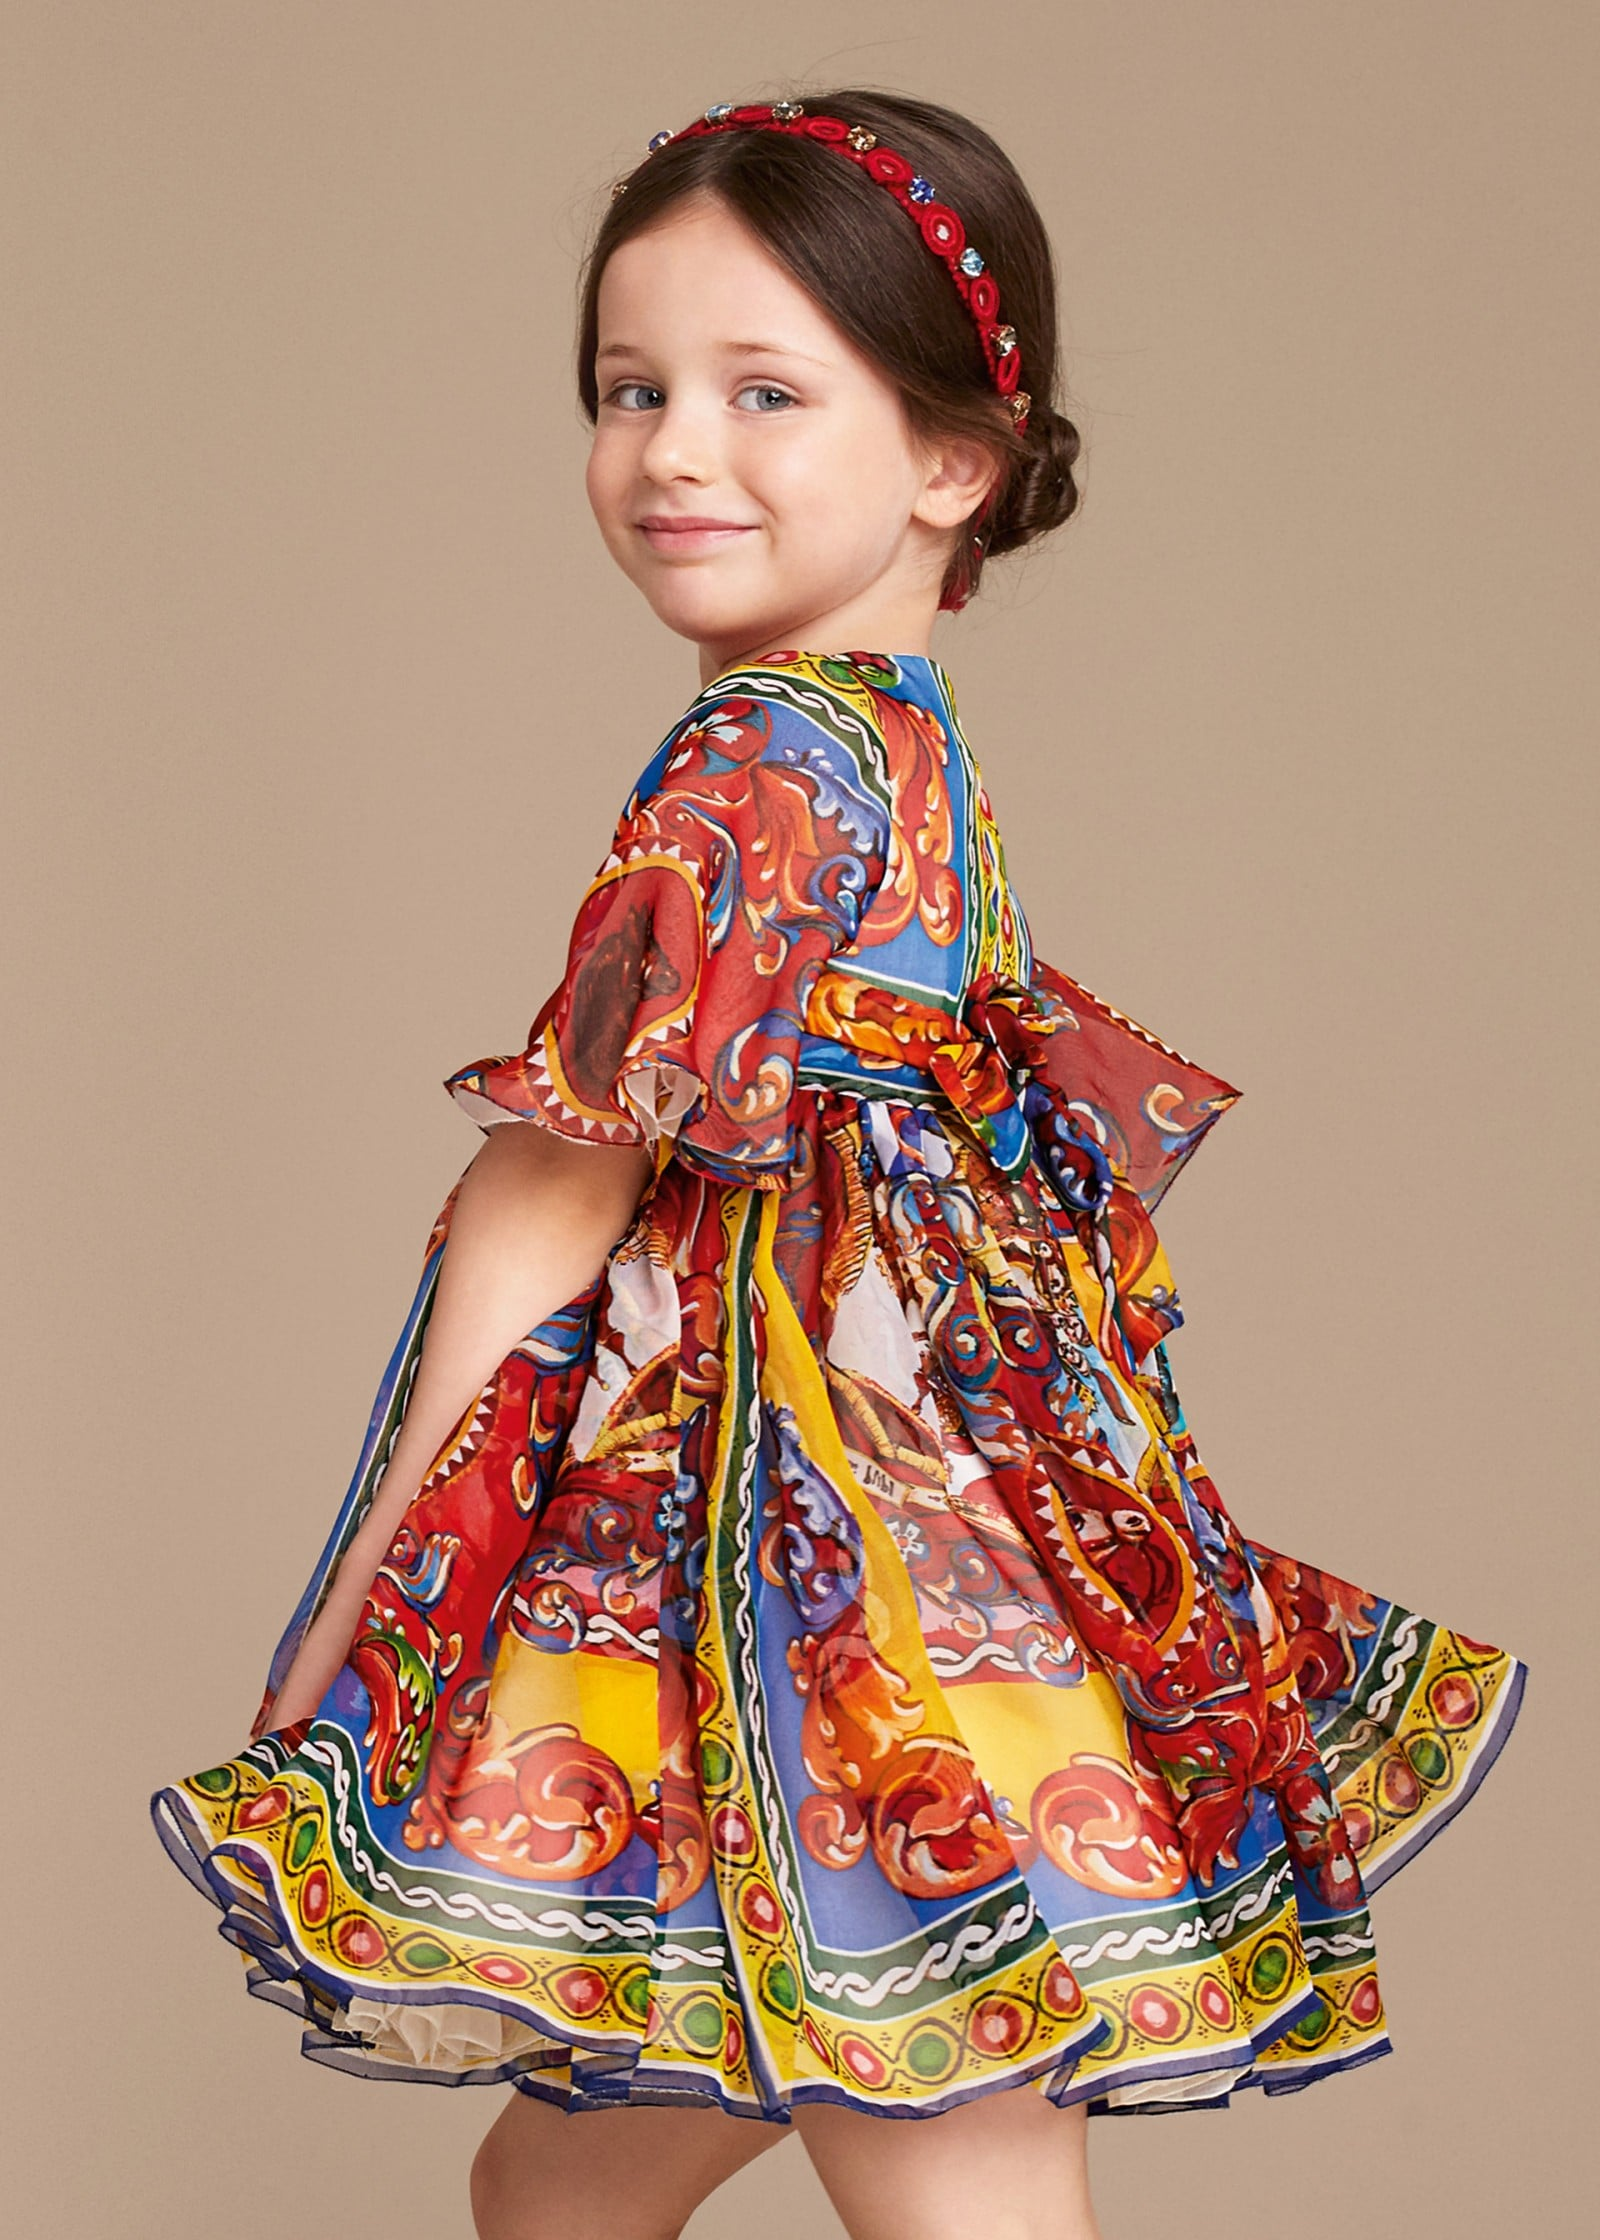 dolce-and-gabbana-summer-2016-child-collection-191-1600x2240.jpg